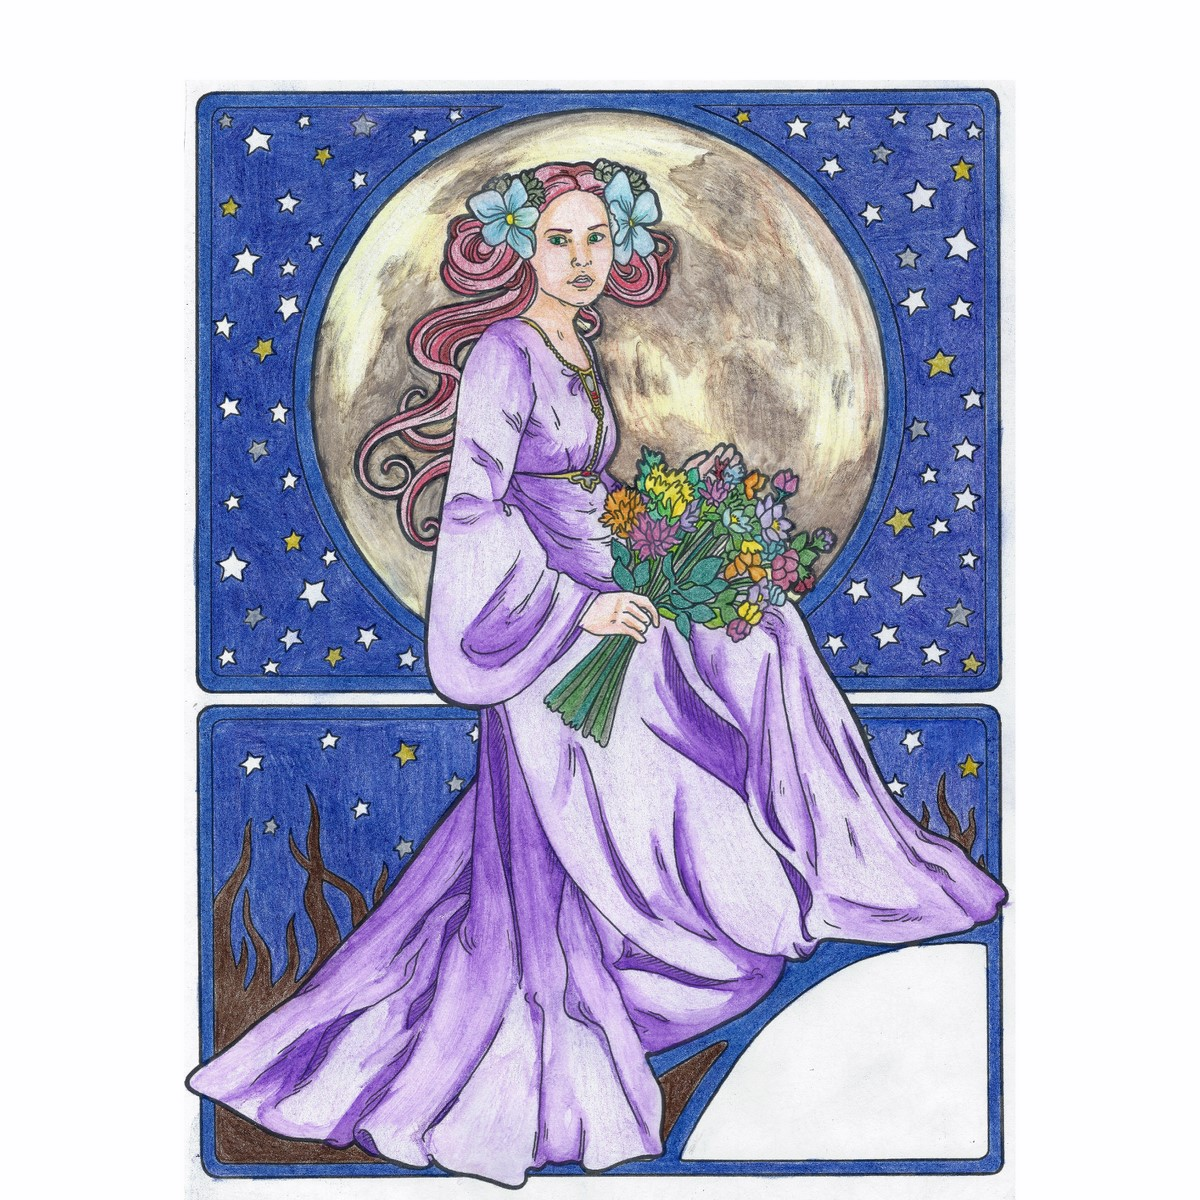 Moon Lady (dry coloring & watercoloring)